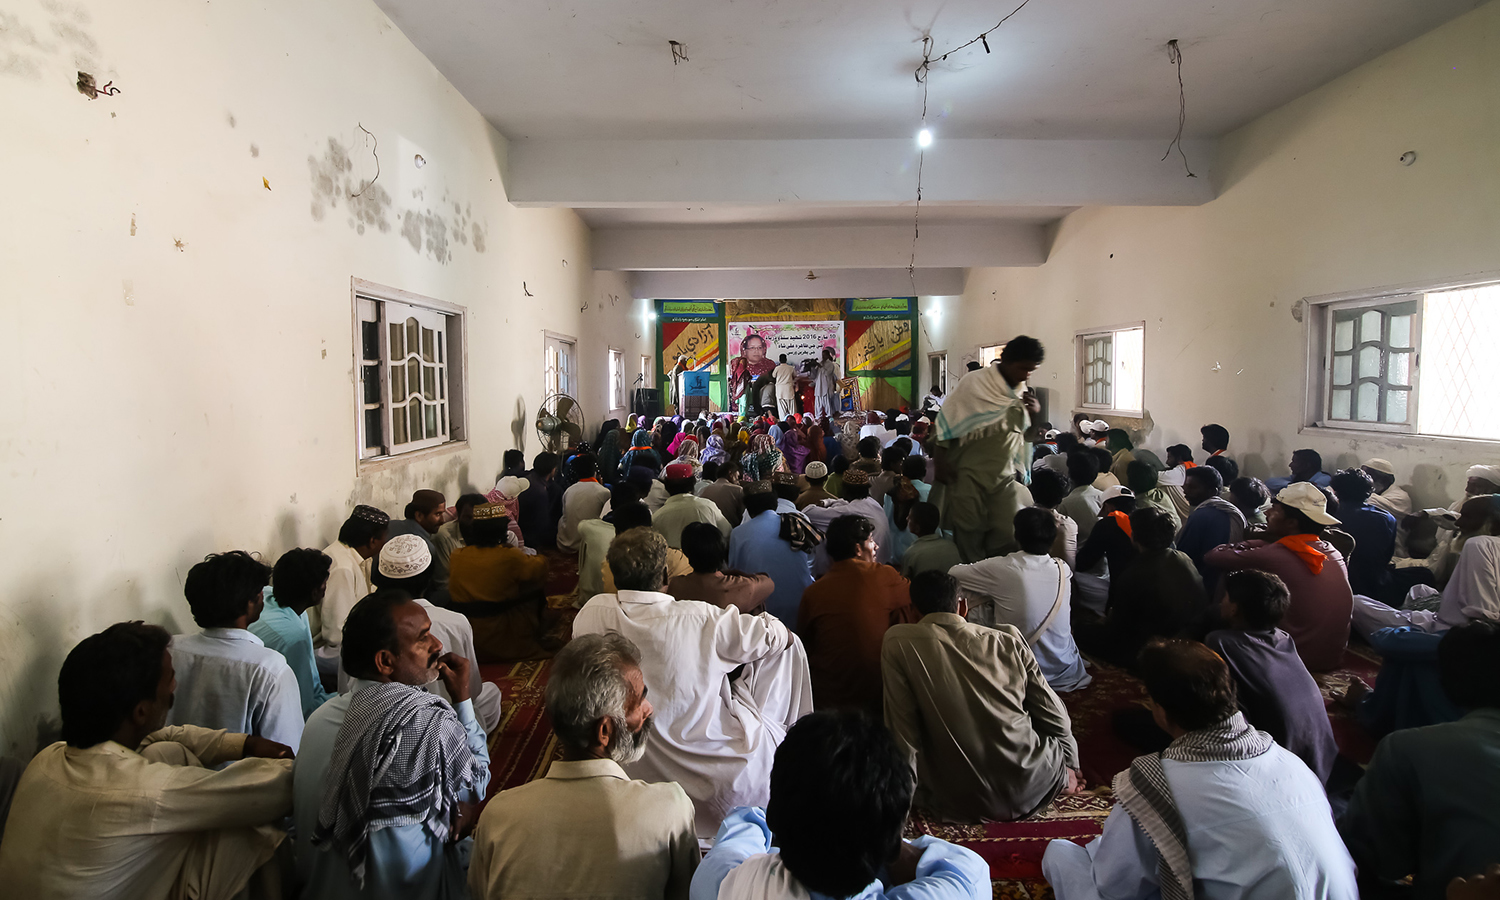 At the Sanghar Press Club where the first death anniversary of Taahira Ali Shah was organised.